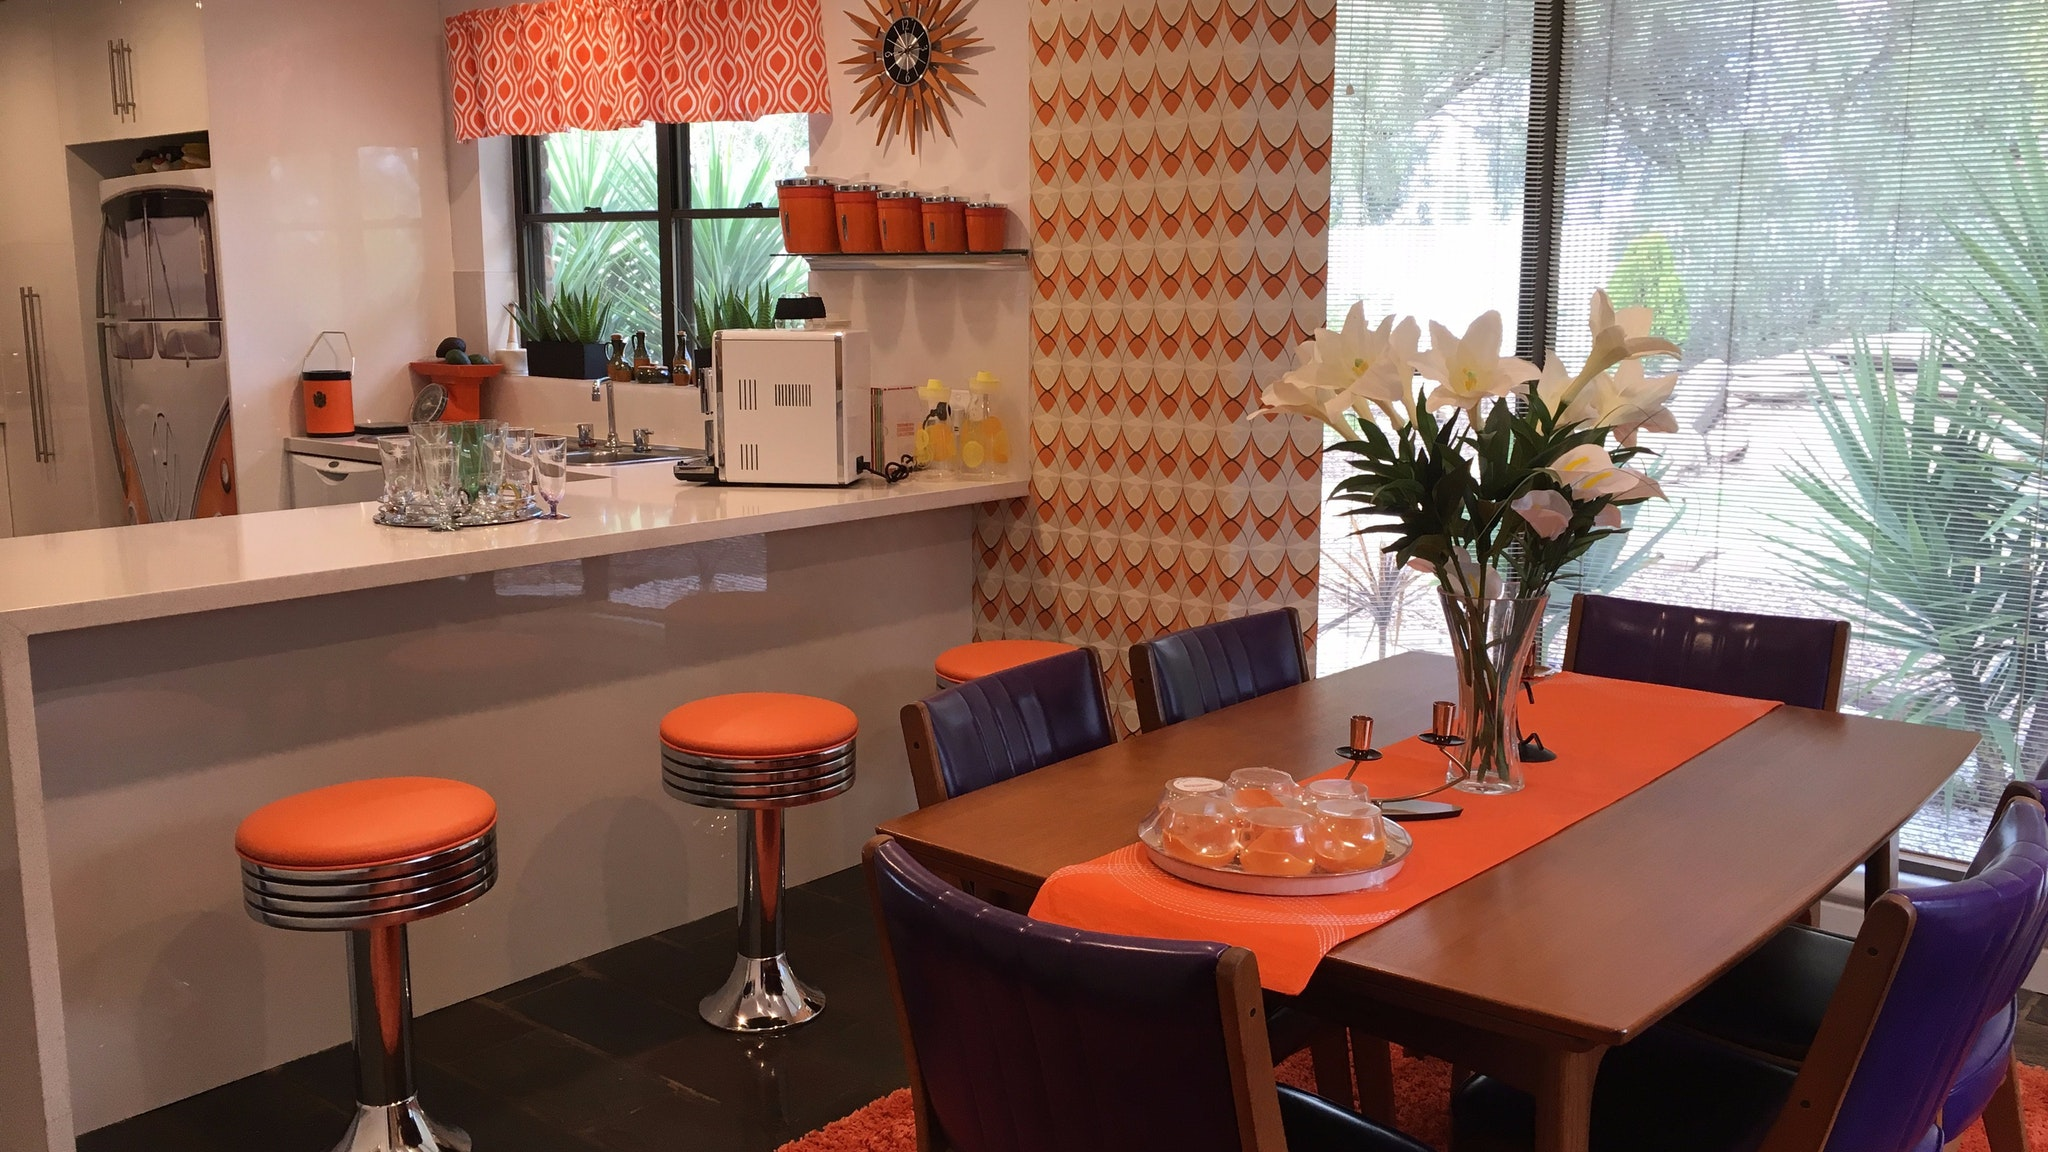 Barossa Retro BnB - Accommodation in Surfers Paradise